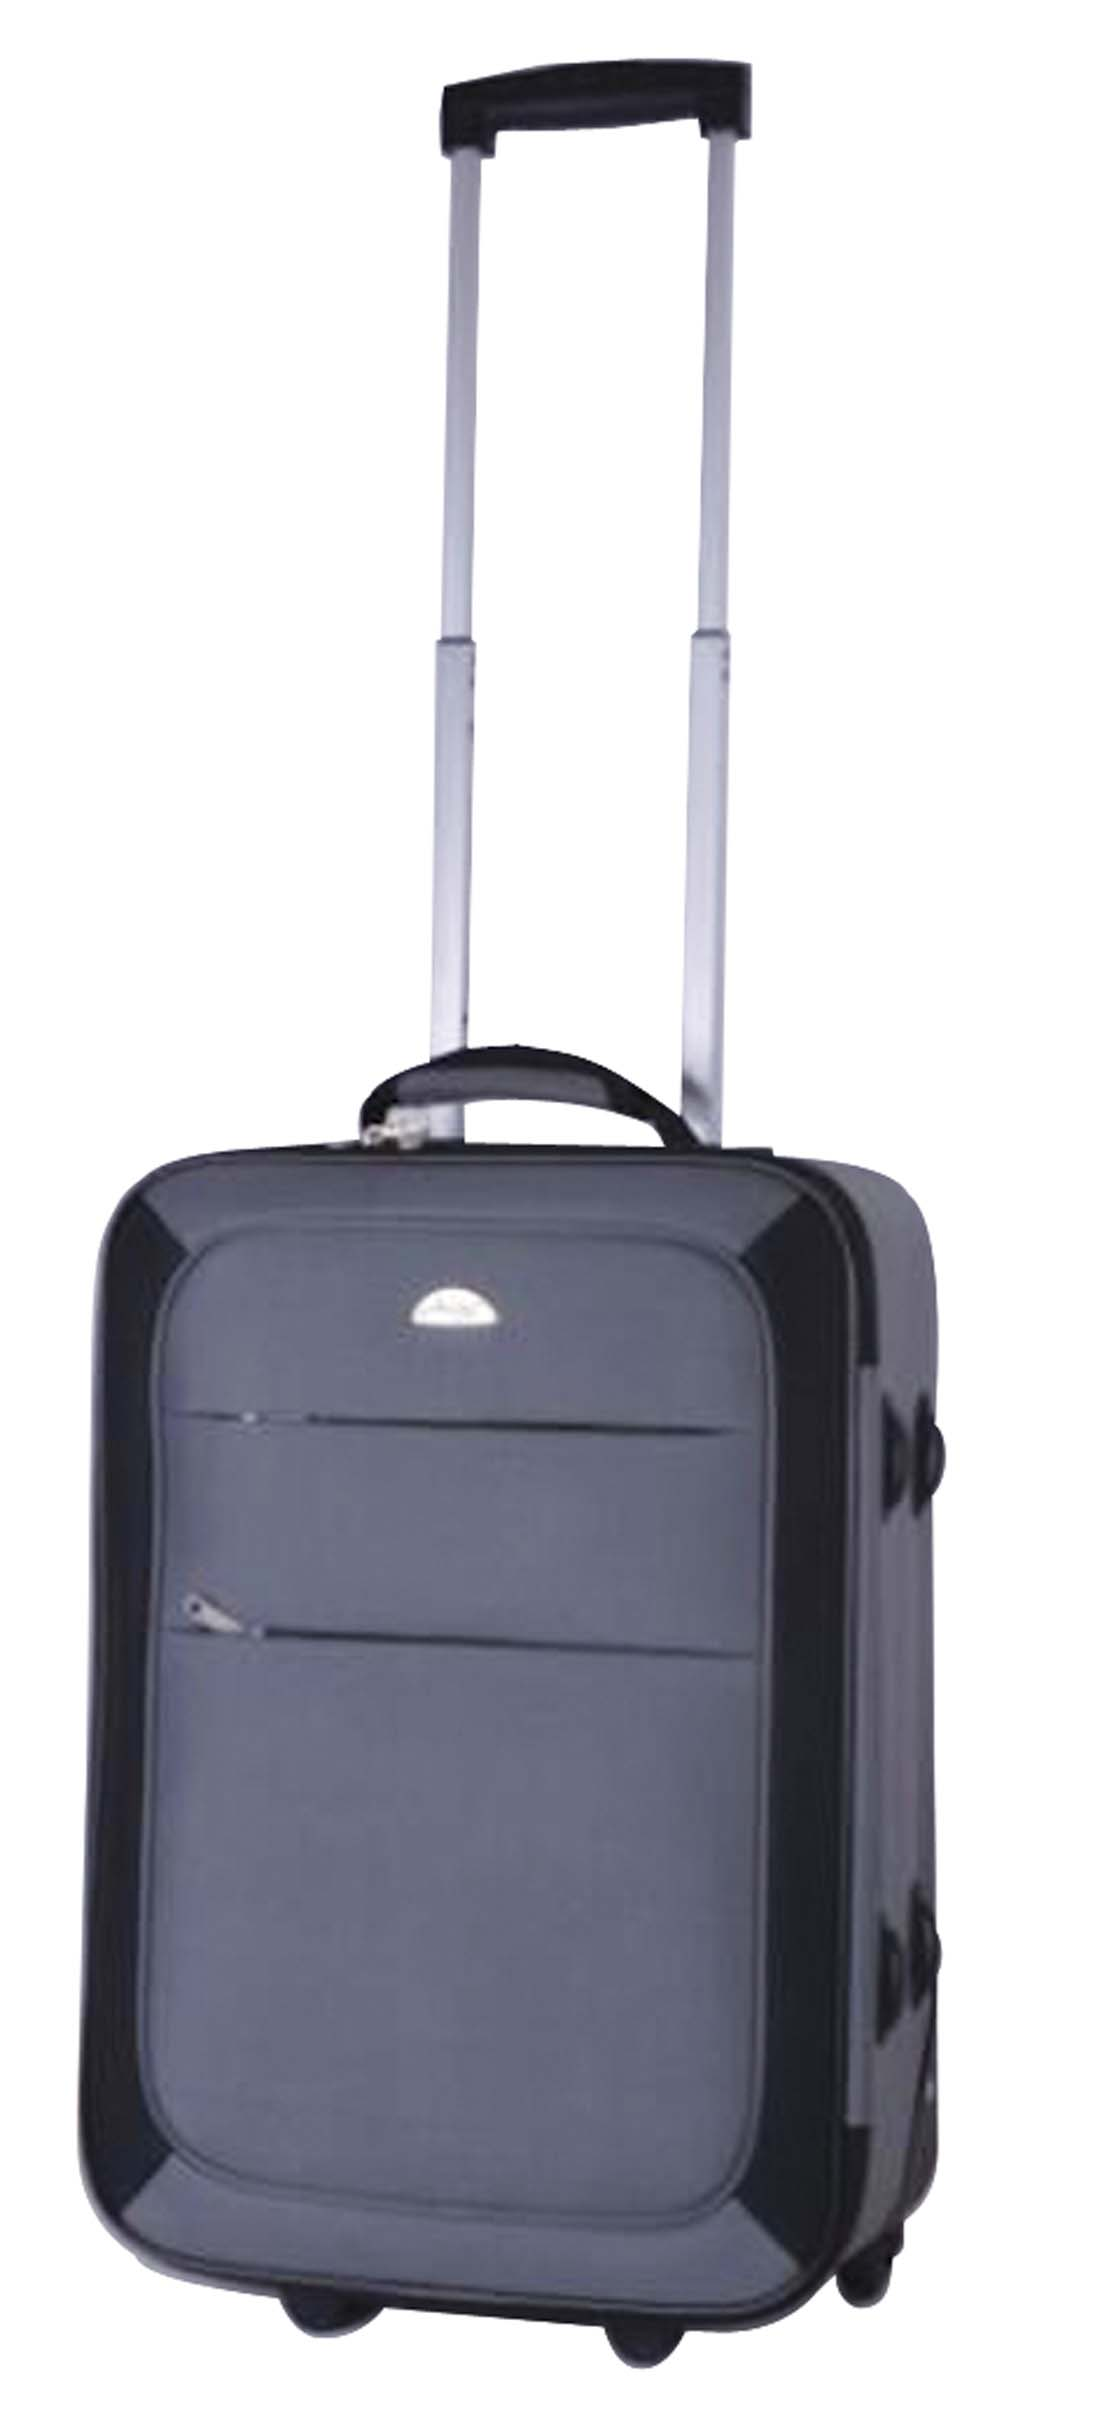 View SOFT LUGGAGE 20 INCH 2 WHEELS GREY WITH BLACK